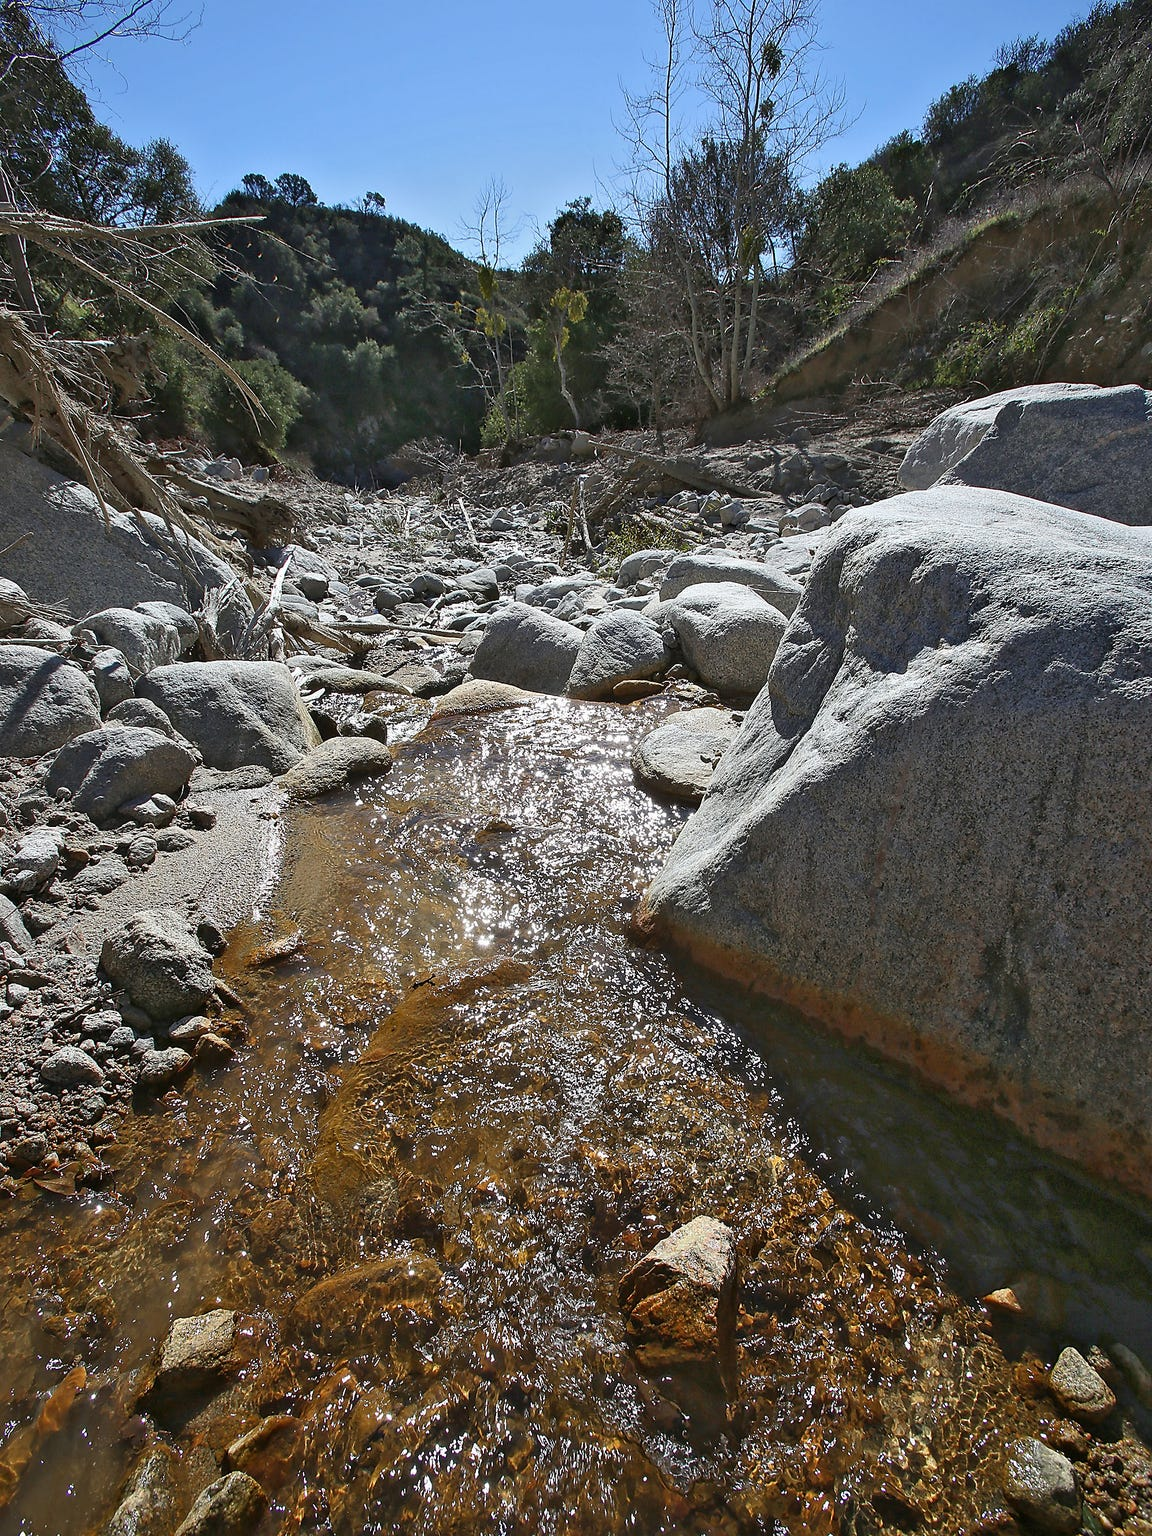 Water flows down Strawberry Creek in the mountains